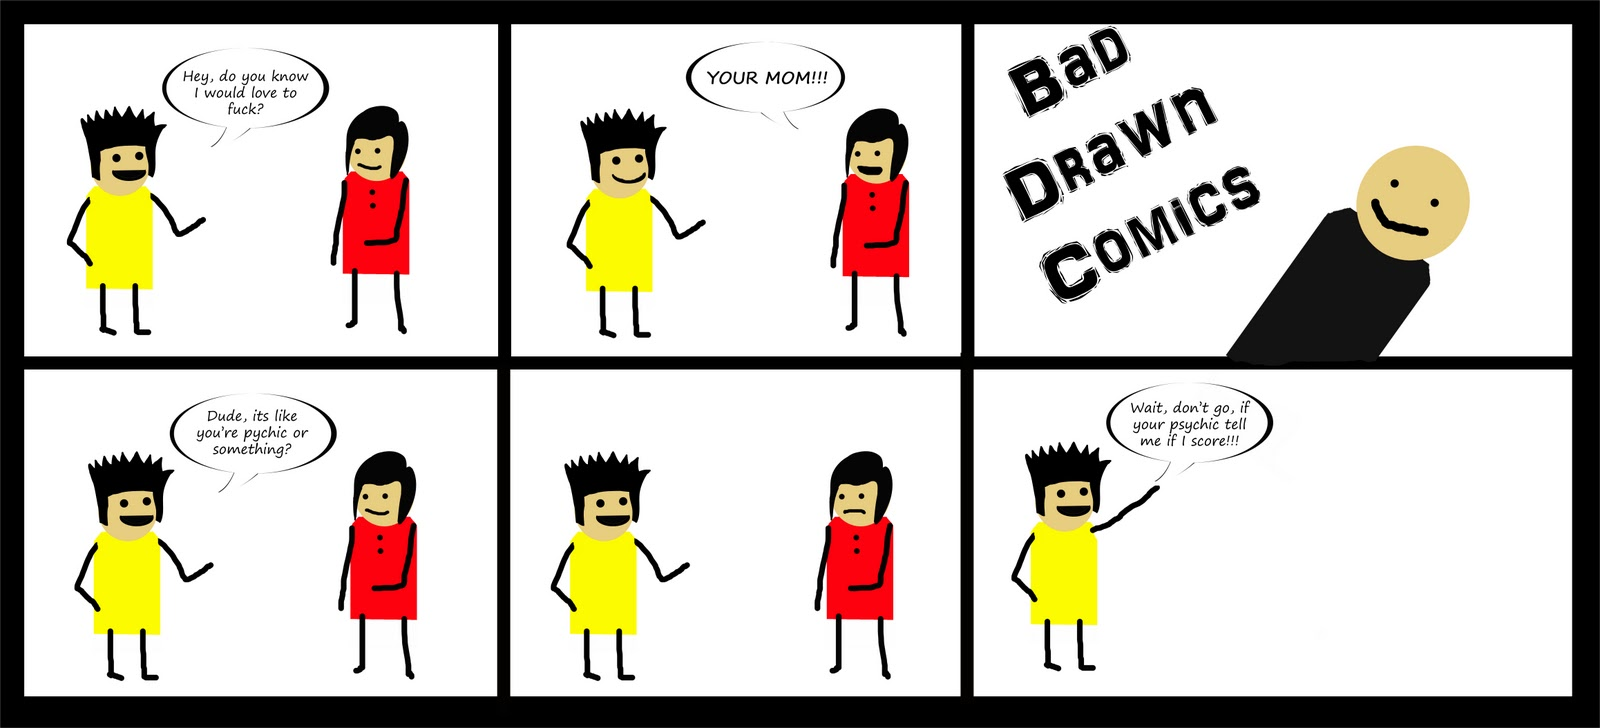 Drawn comics Drawn Bad 1 Comics Comic